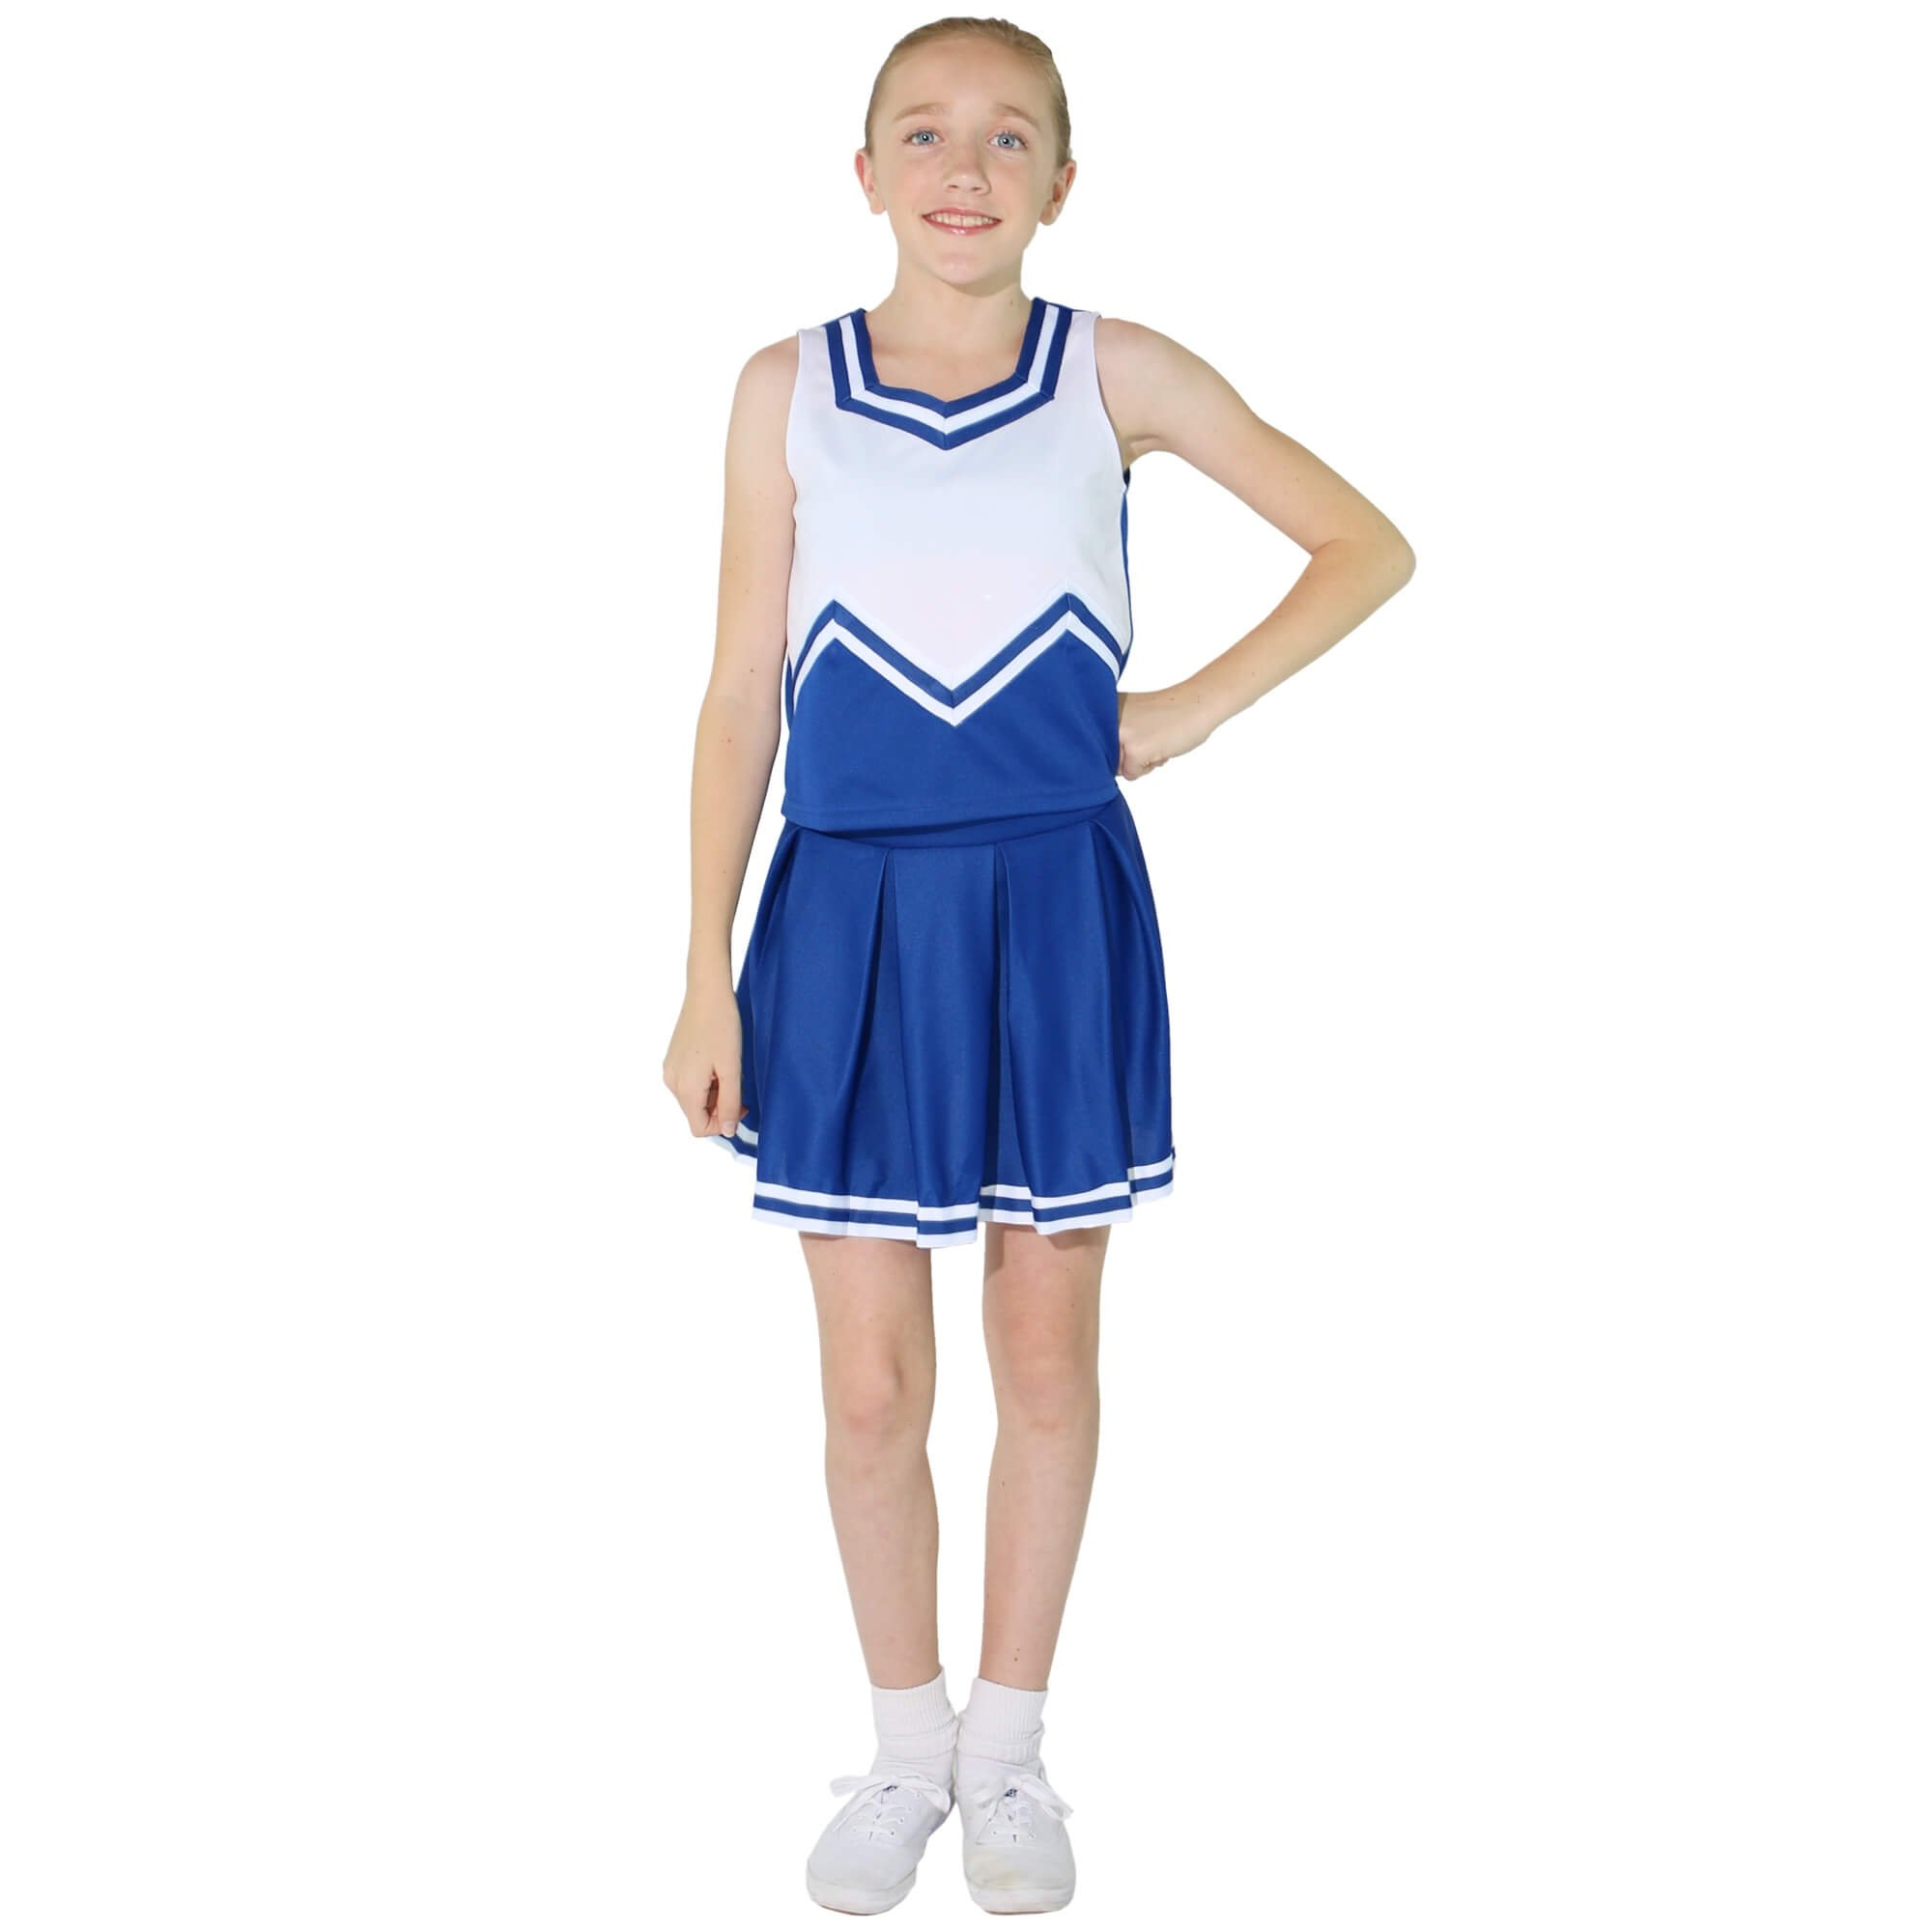 Danzcue Child M Sweetheart Knit Pleat Skirt Cheerleaders Uniform Set